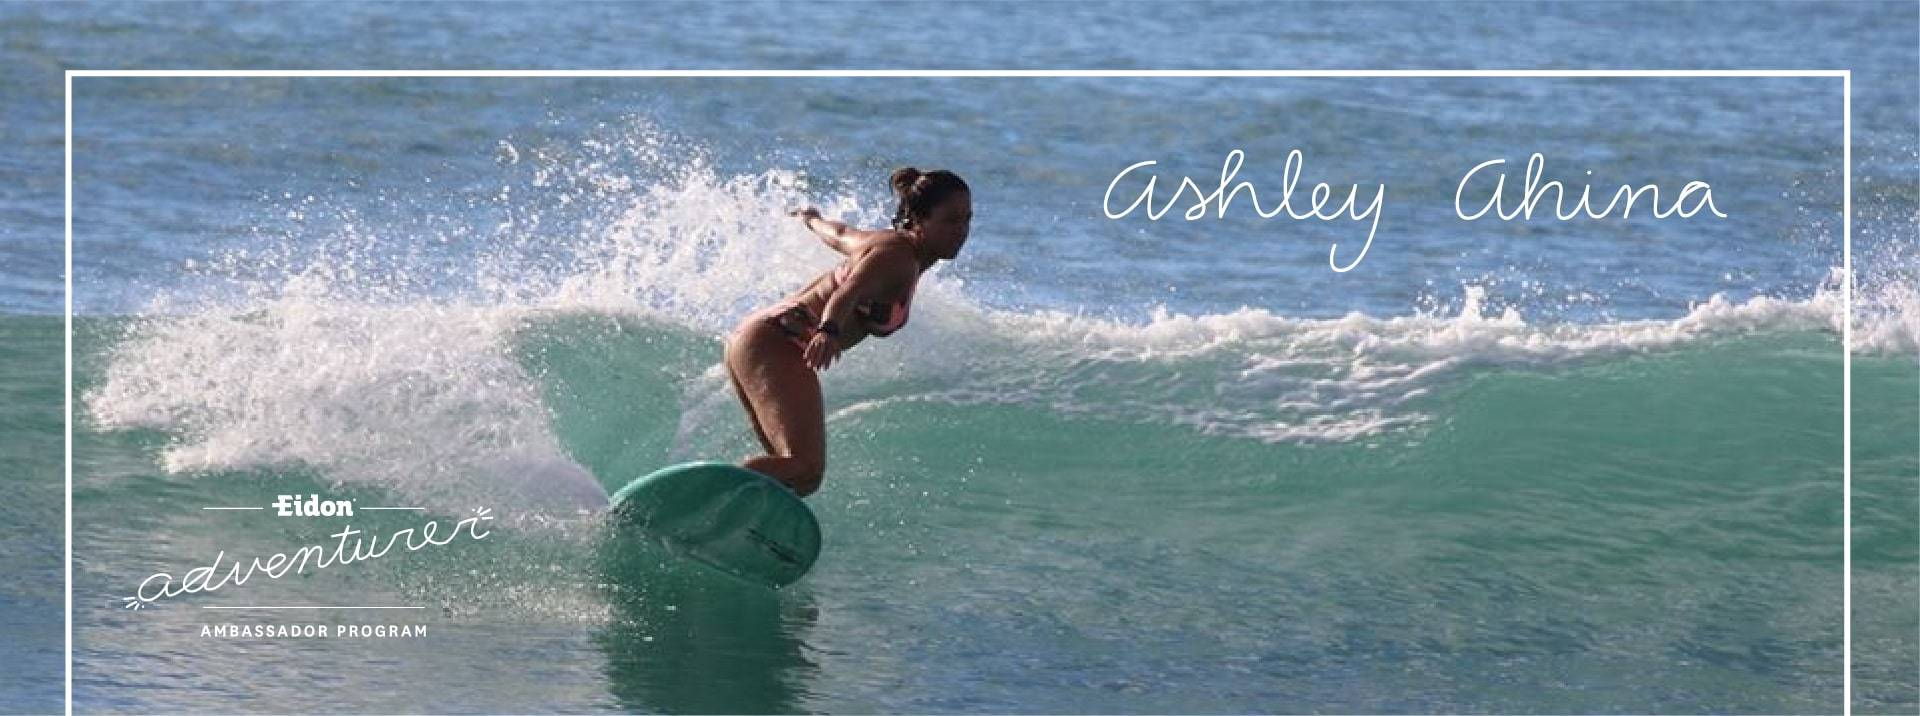 Introducing #EidonAdventurer Ashley Ahina